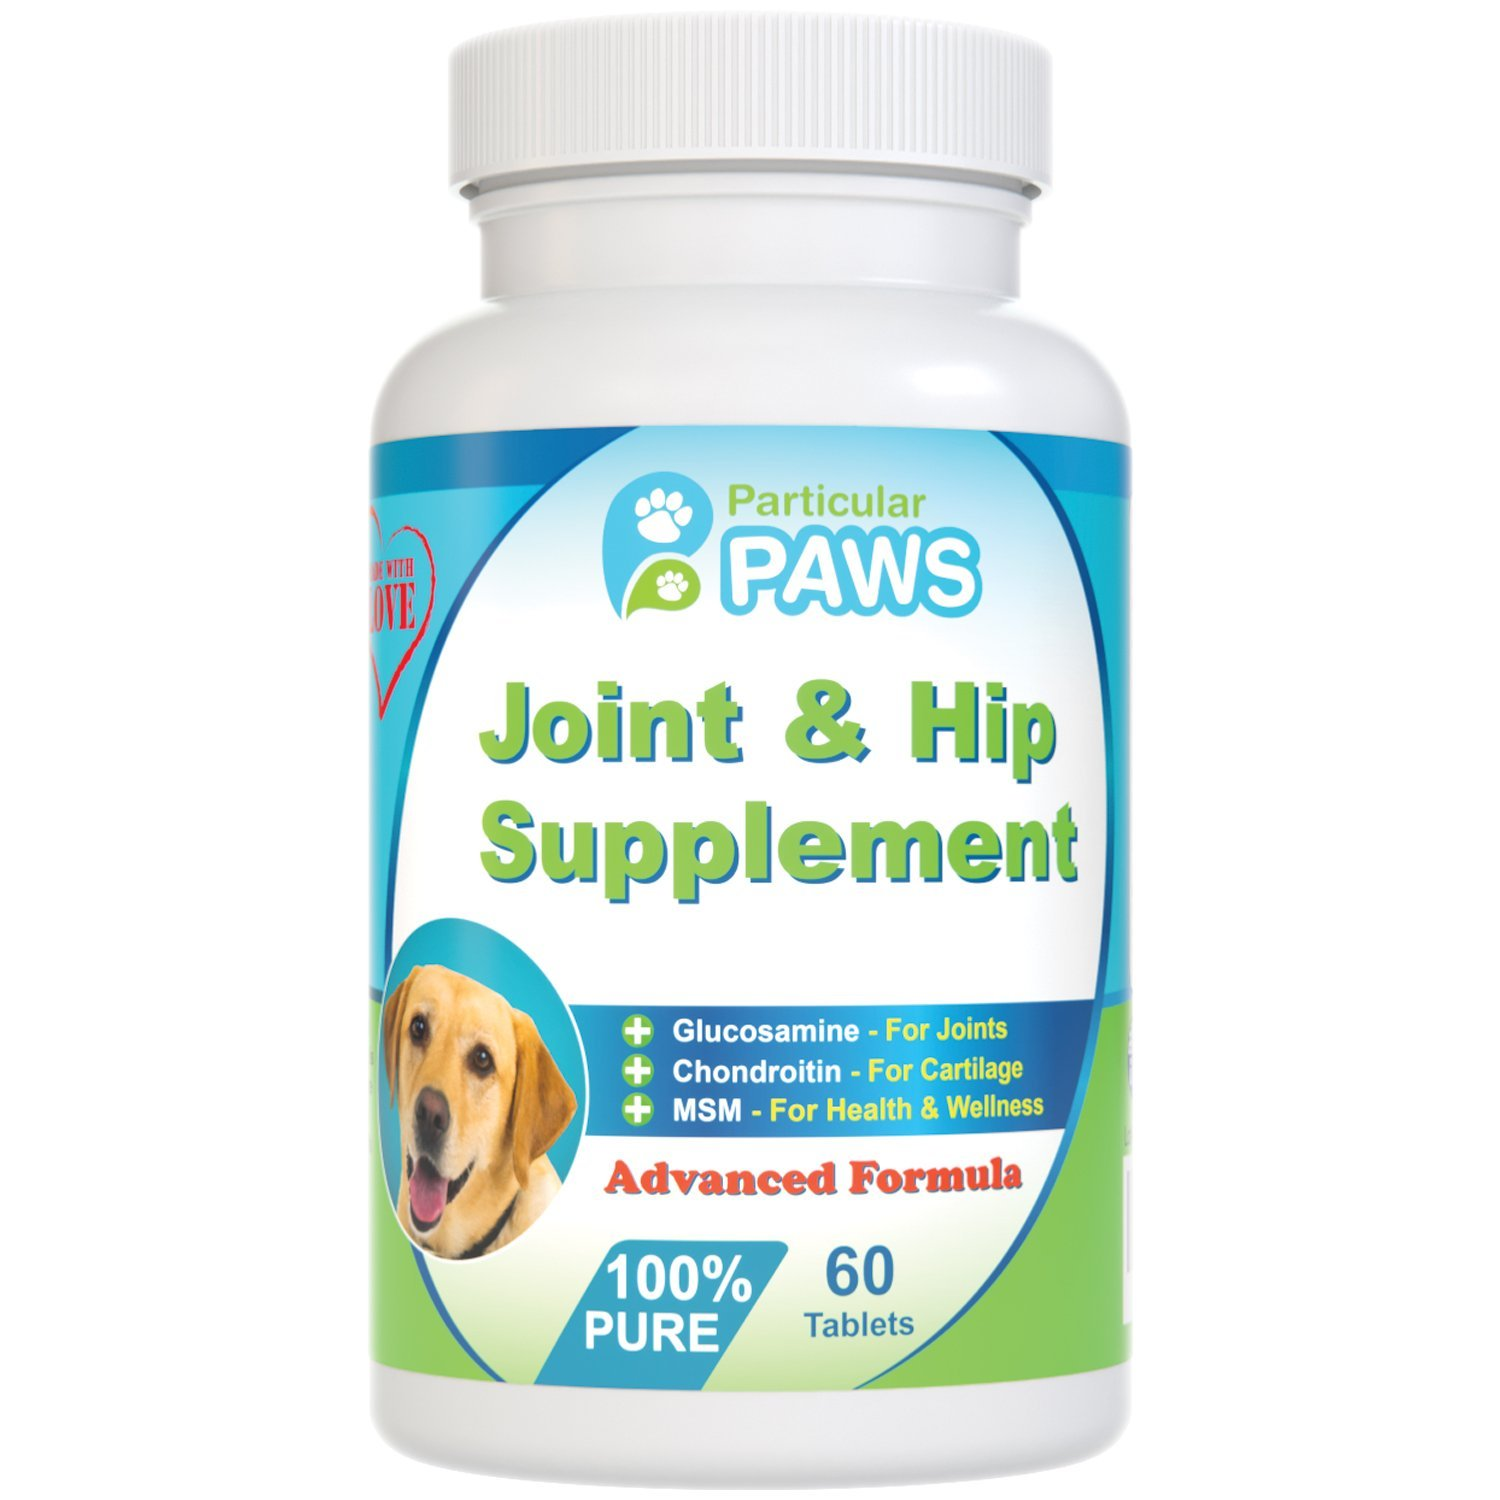 Particular Paws Glucosamine for Dogs Advanced